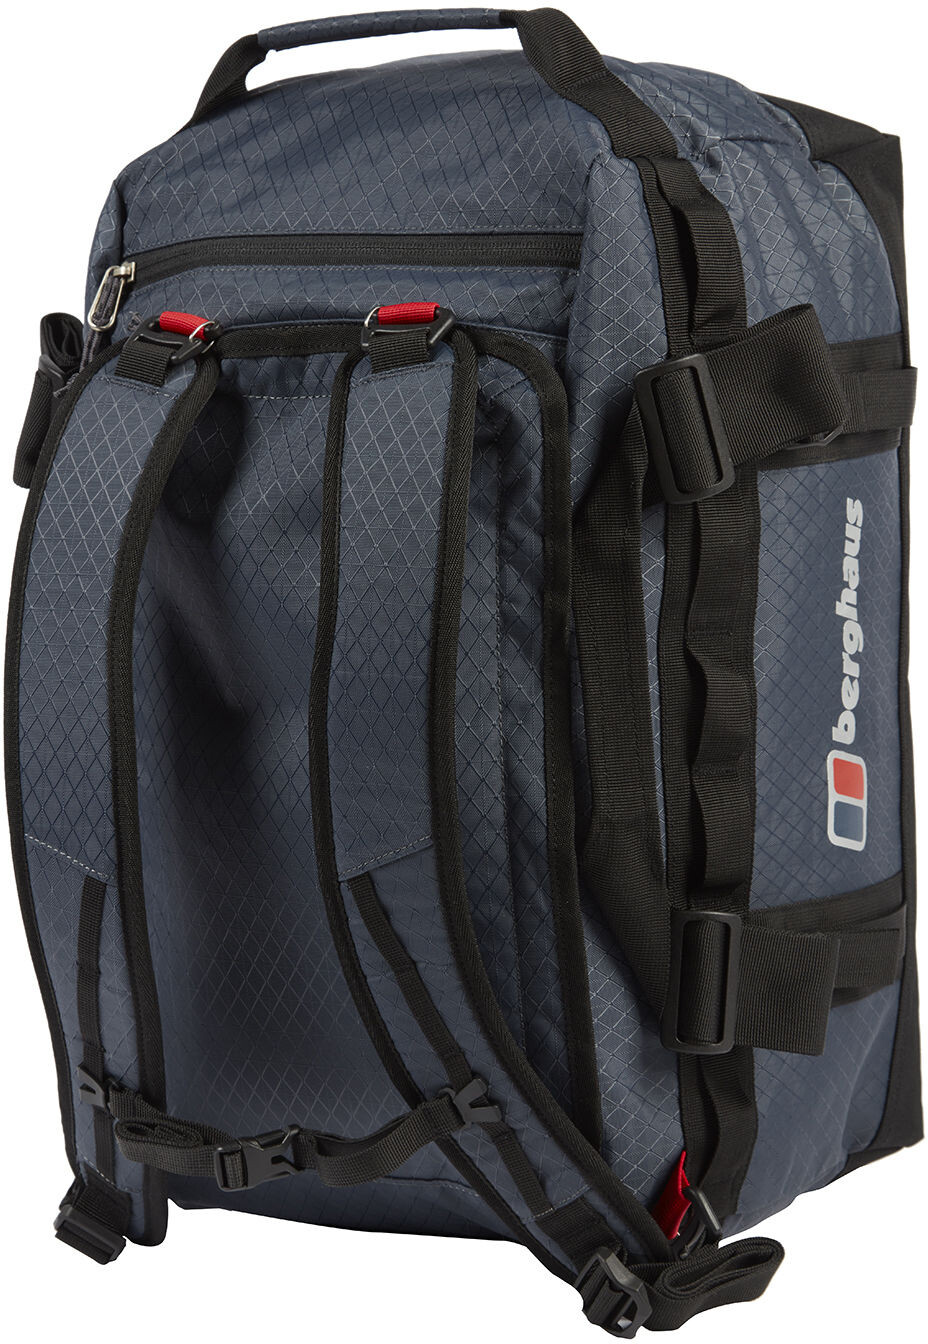 983cb6433fcf Berghaus Expedition Mule 40 Travel Luggage grey black at Addnature.co.uk